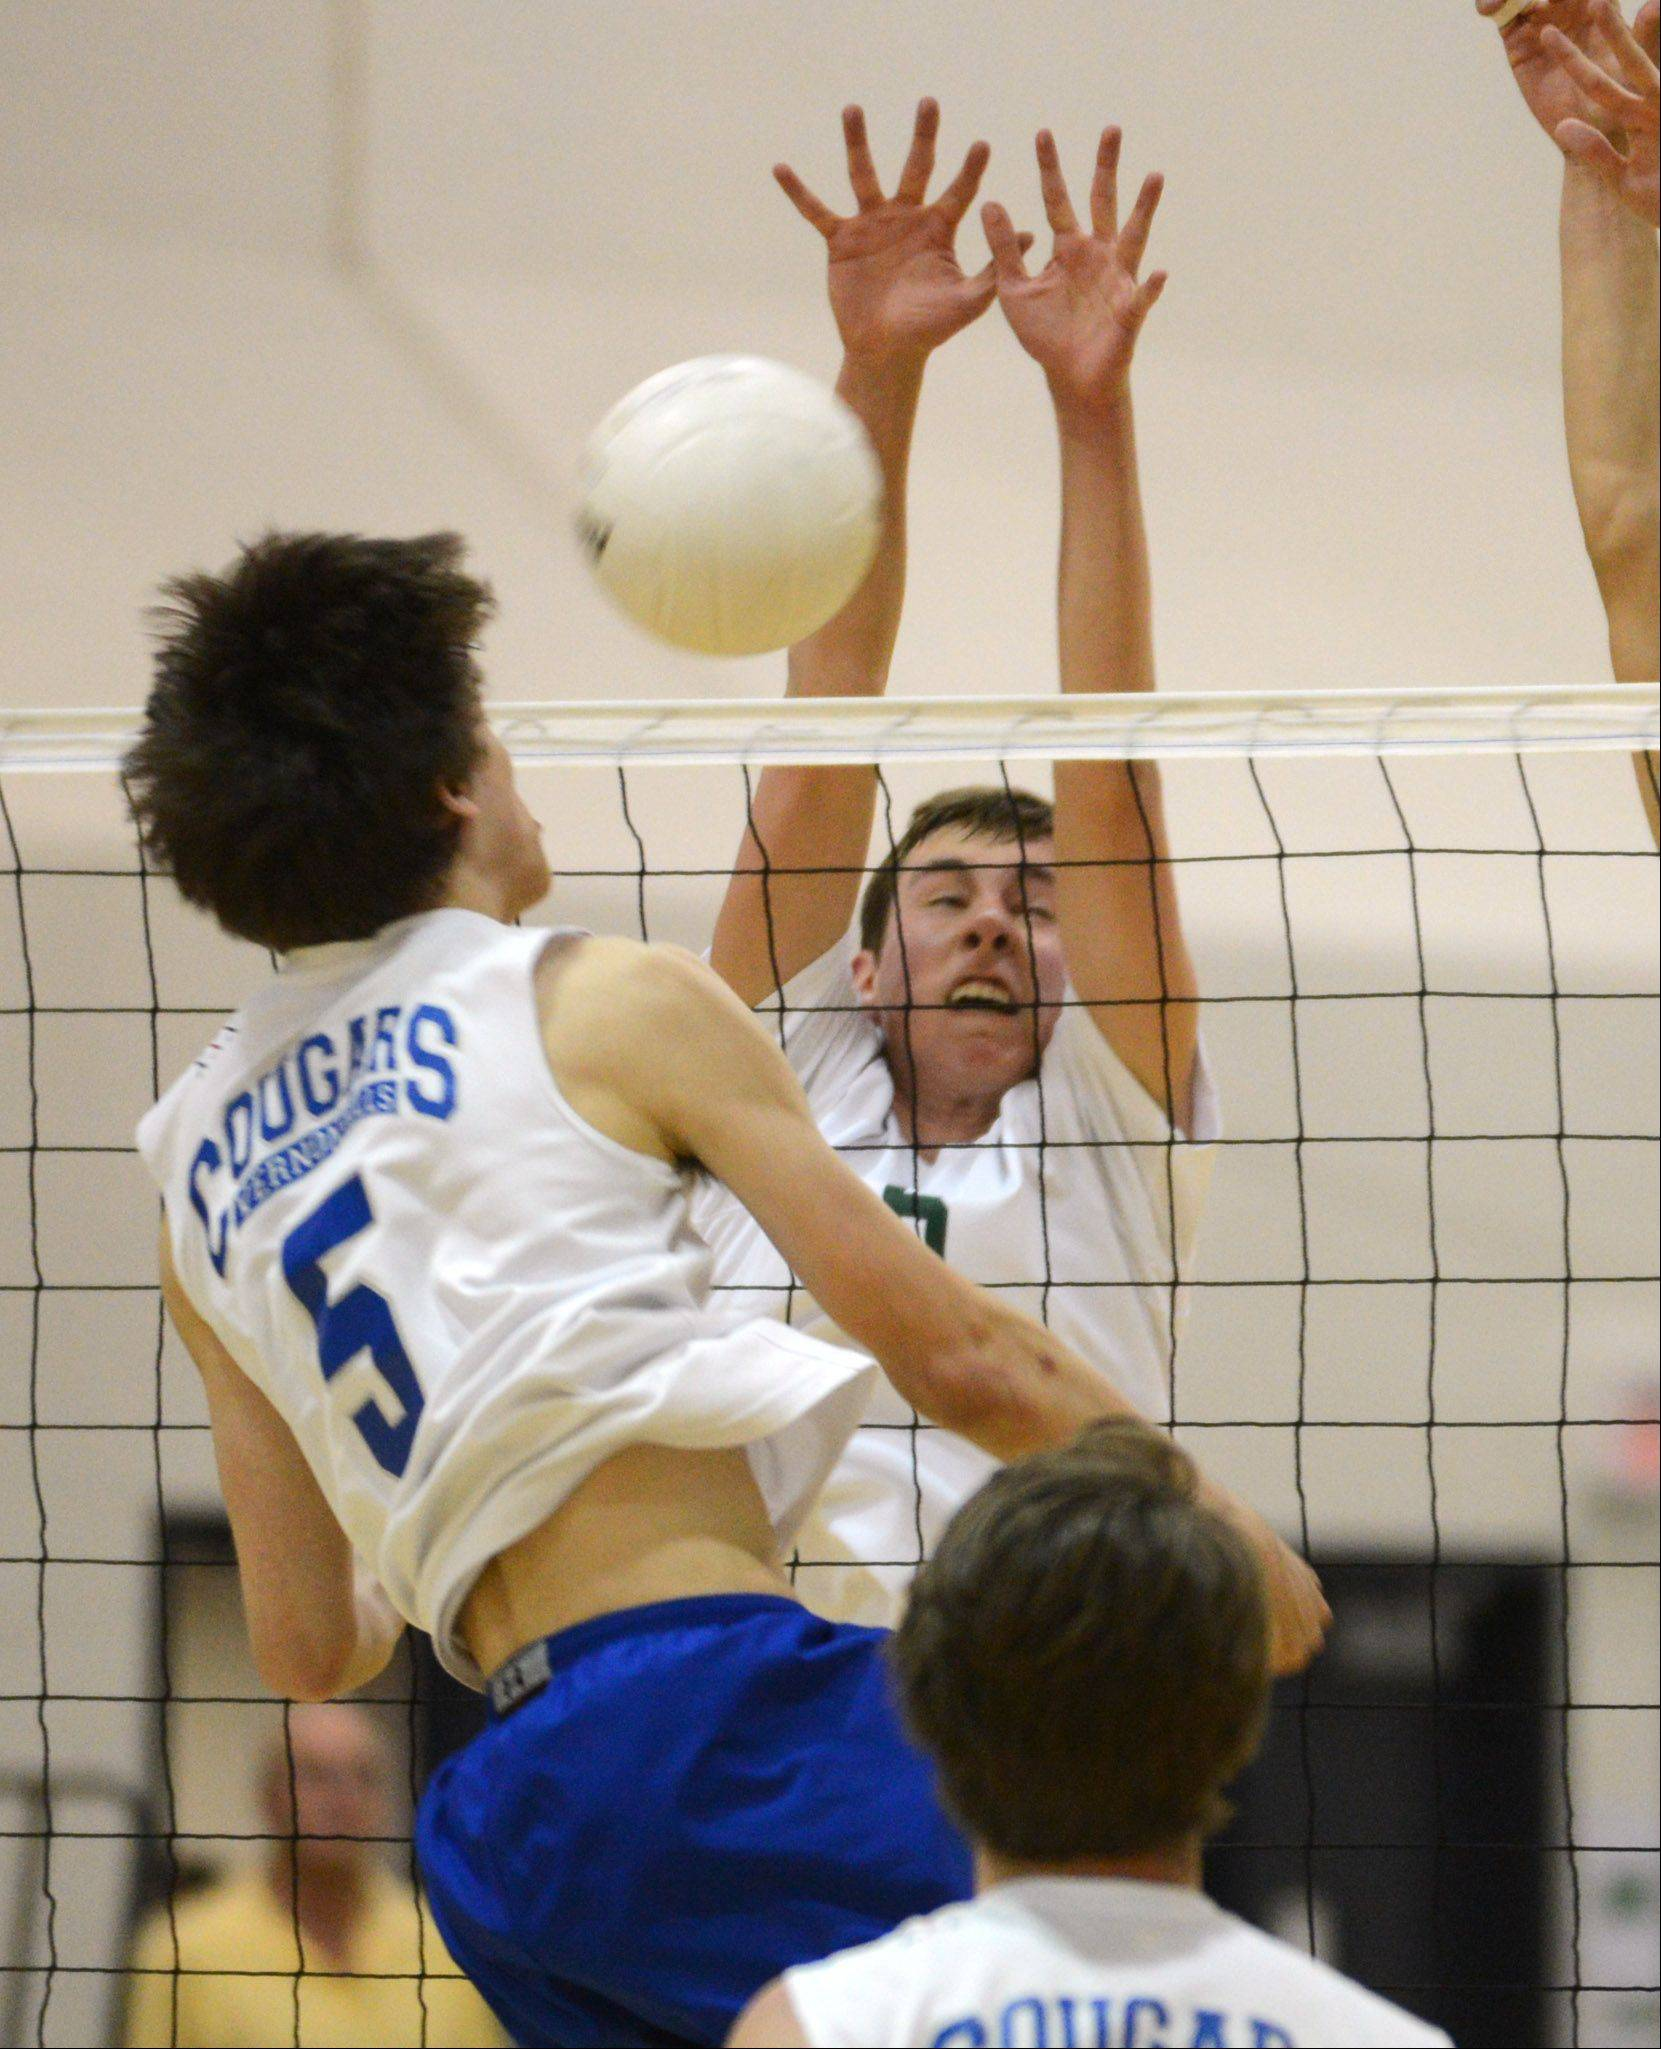 Vernon Hills' Max Spiglanin (5) tries to knock the ball past Stevenson's Jonah May during the volleyball match Tuesday night in Lincolnshire.